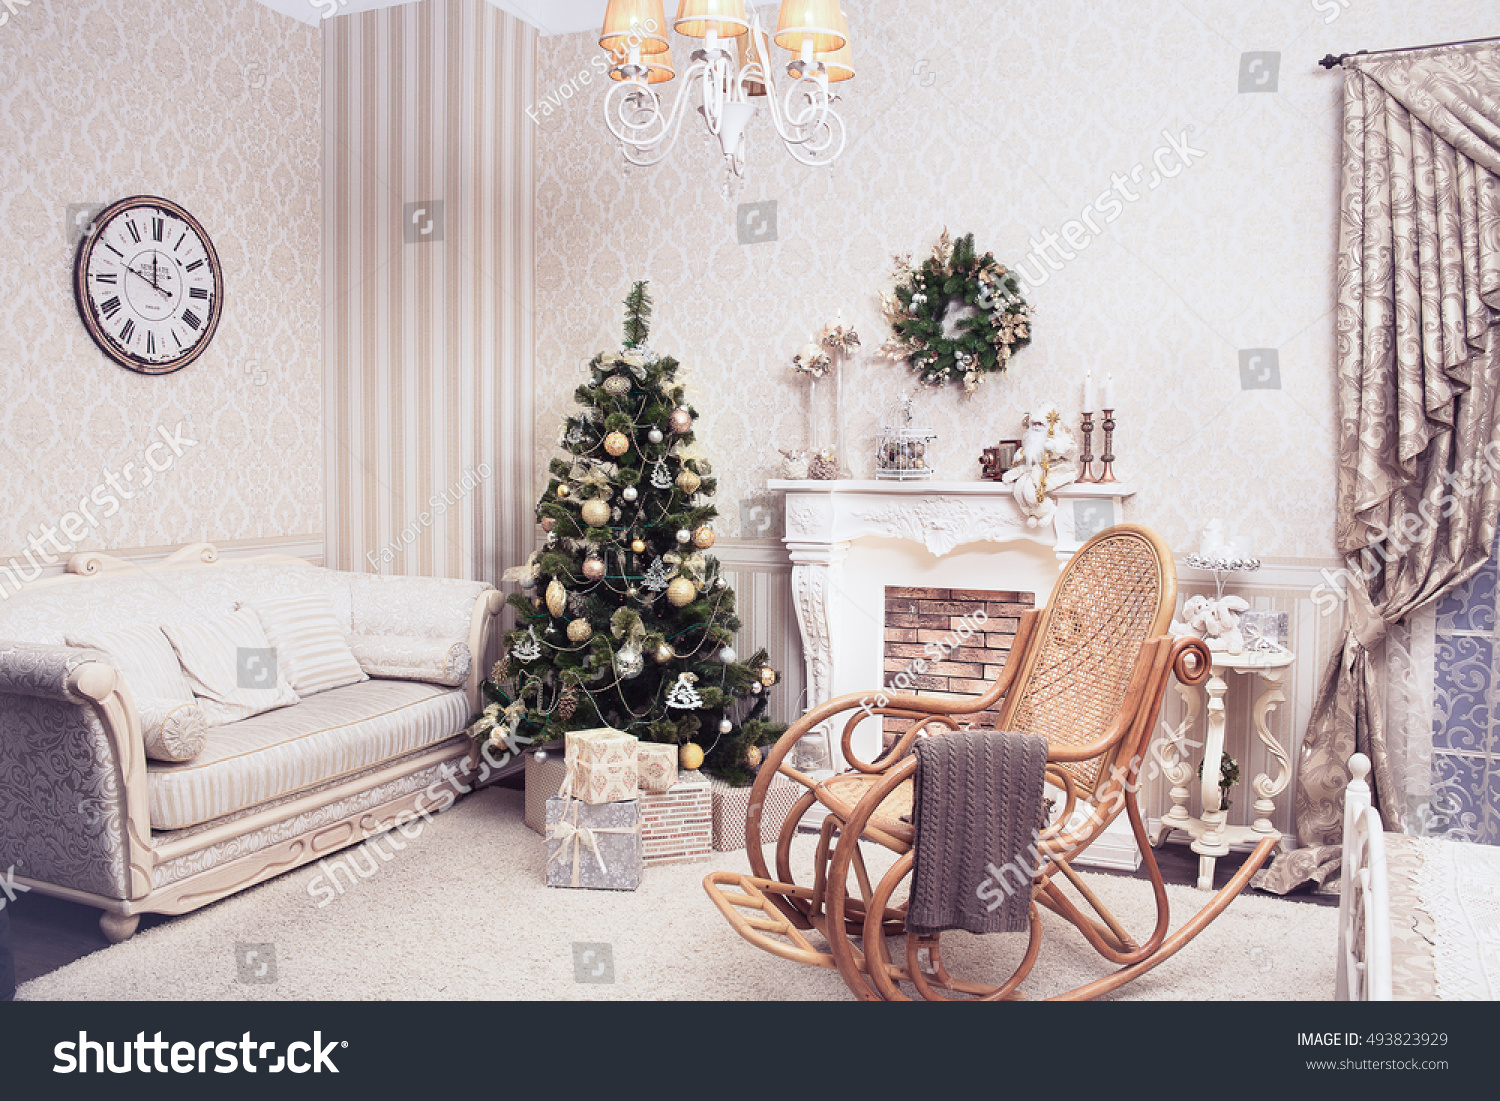 Cozy Living Room Holiday Time Christmas Stock Photo Edit Now 493823929